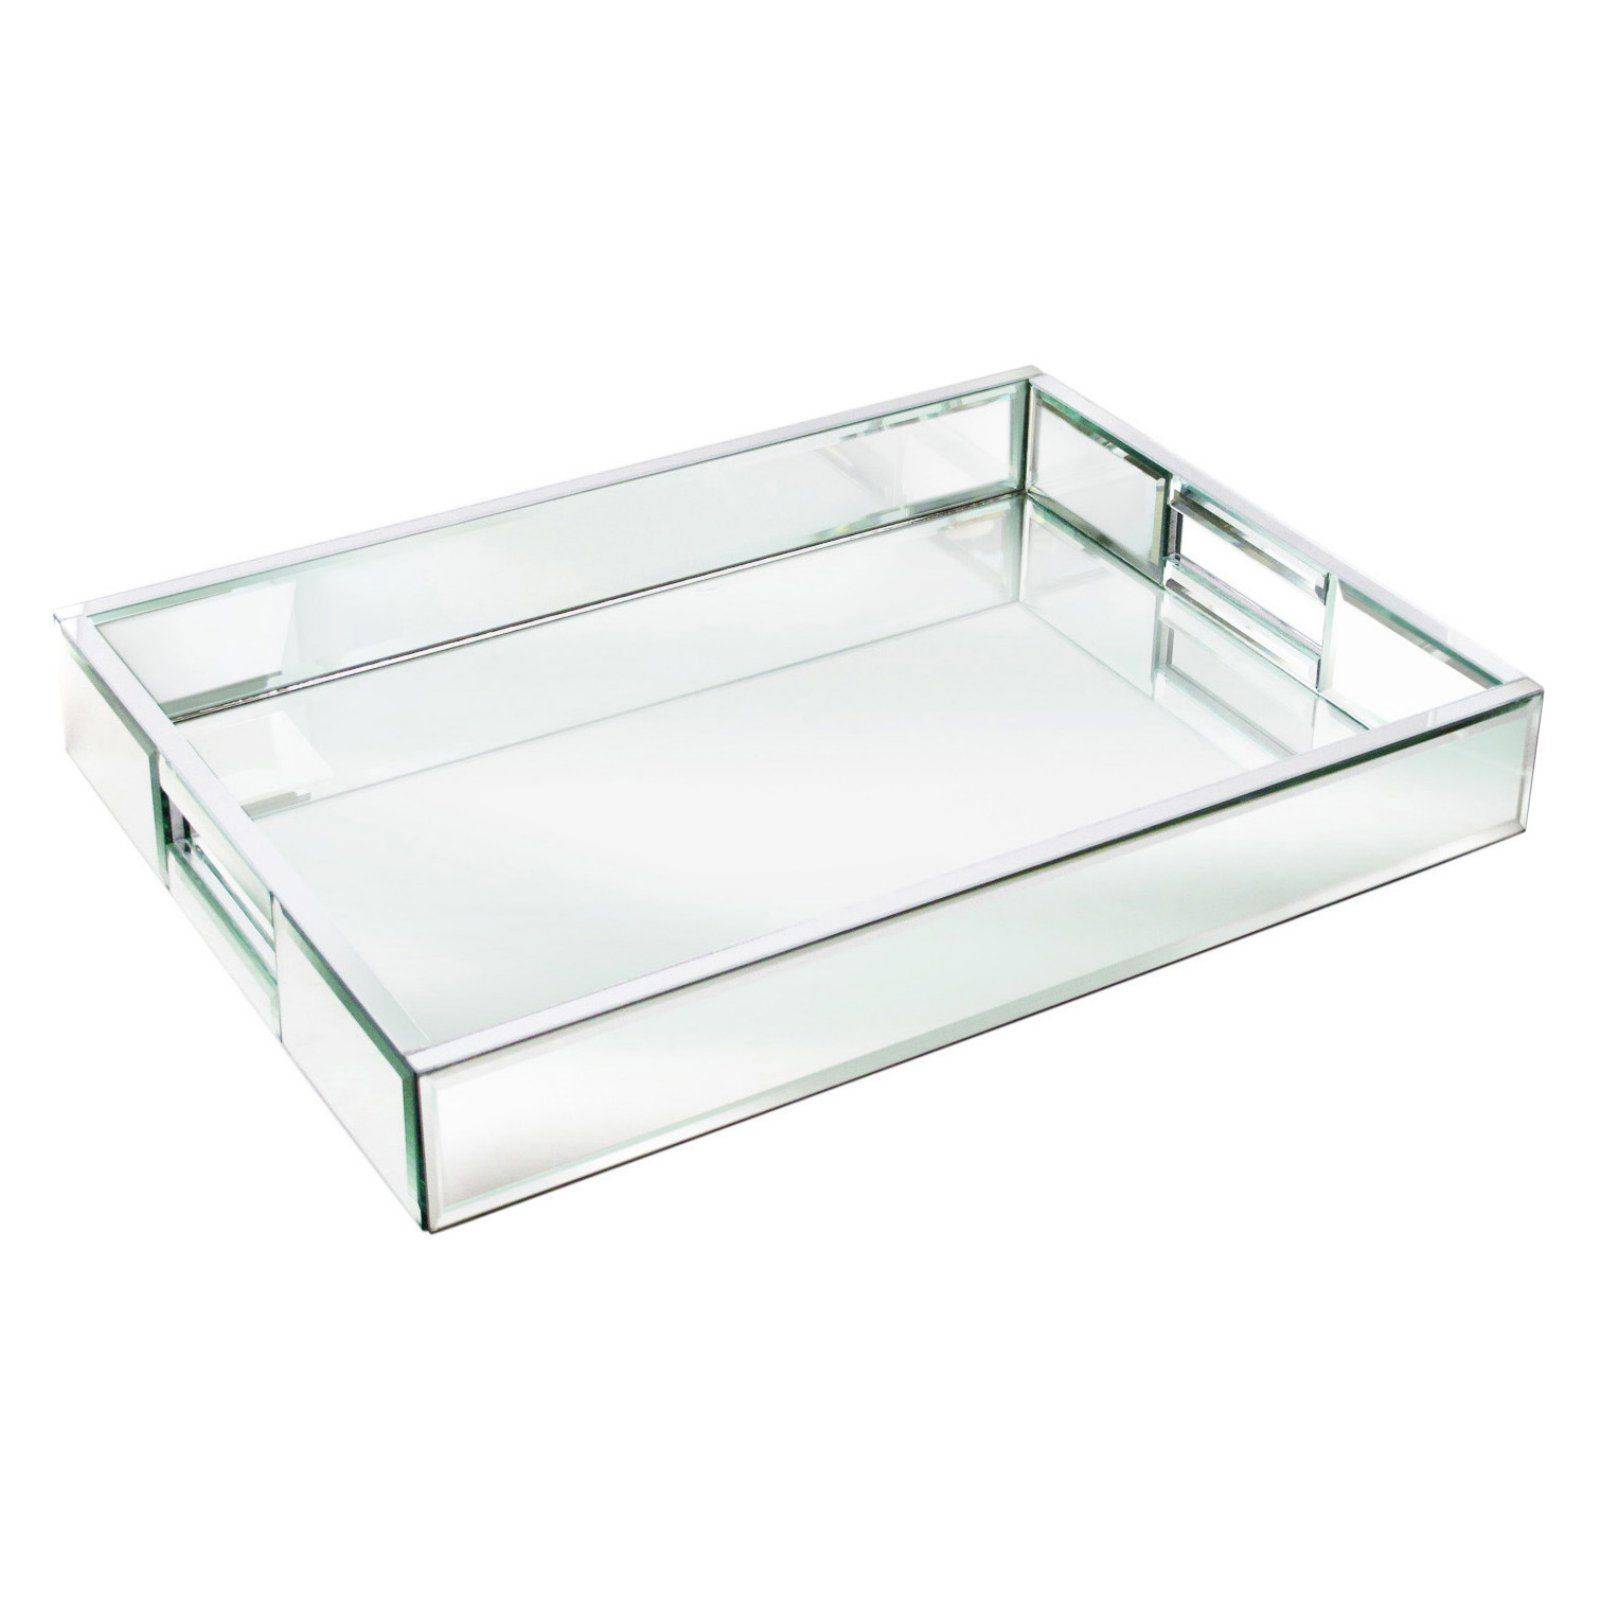 New Contemporary Trays Fresh Charge It by Jay Mirror Rectangle Tray with Handles